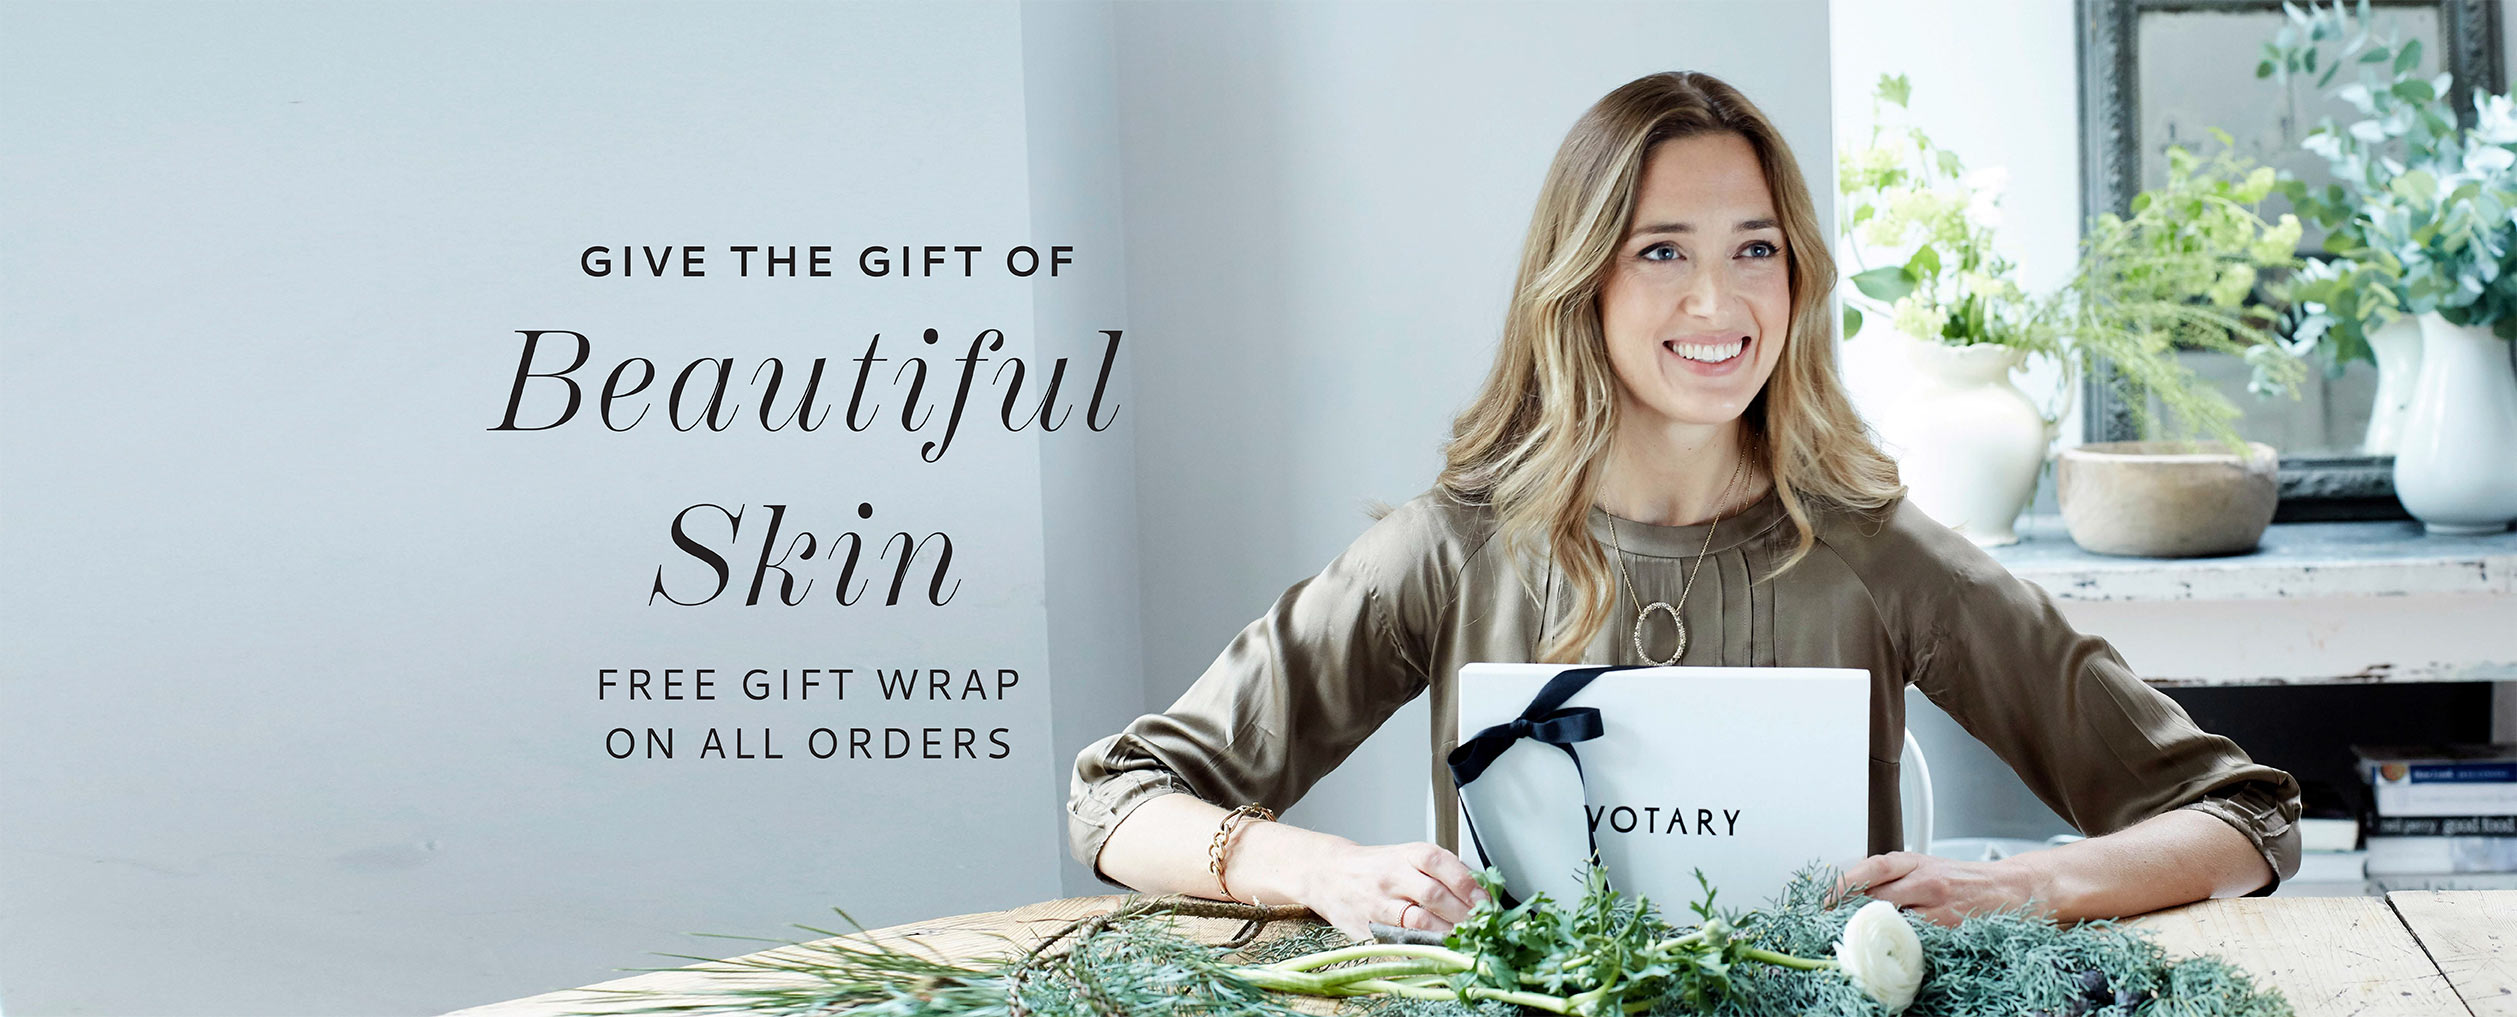 Votary gift wrap